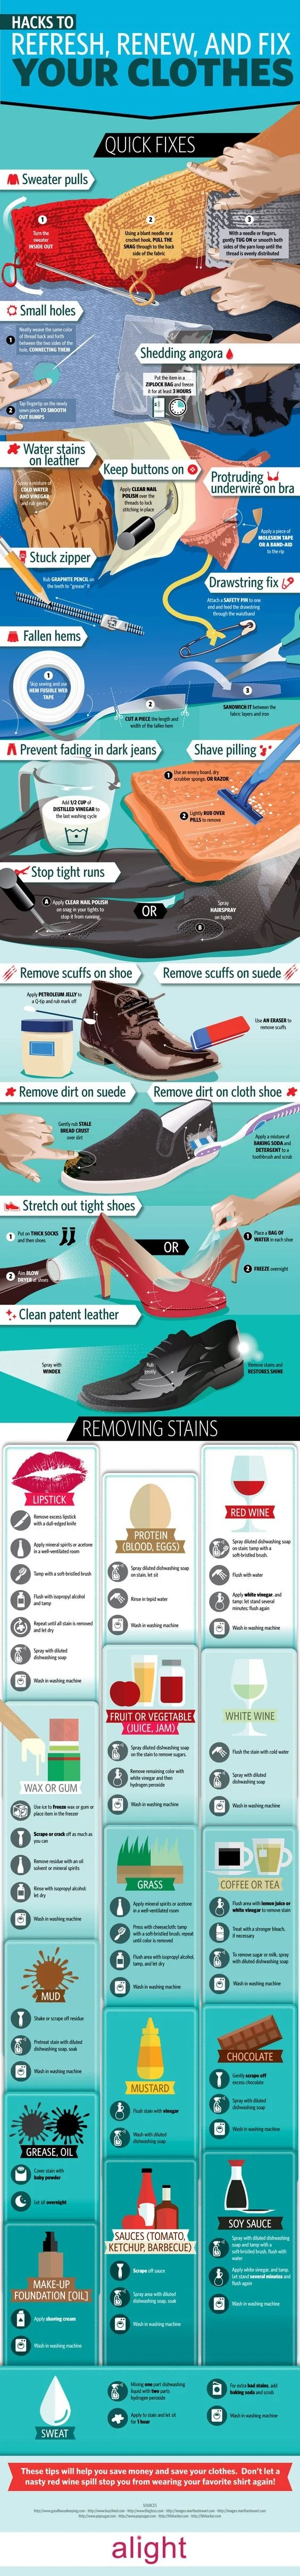 These 8 Cleaning Hack Charts And Tutorials Are LIFE-CHANGING! I can't believe I didn't think to look up this information sooner!